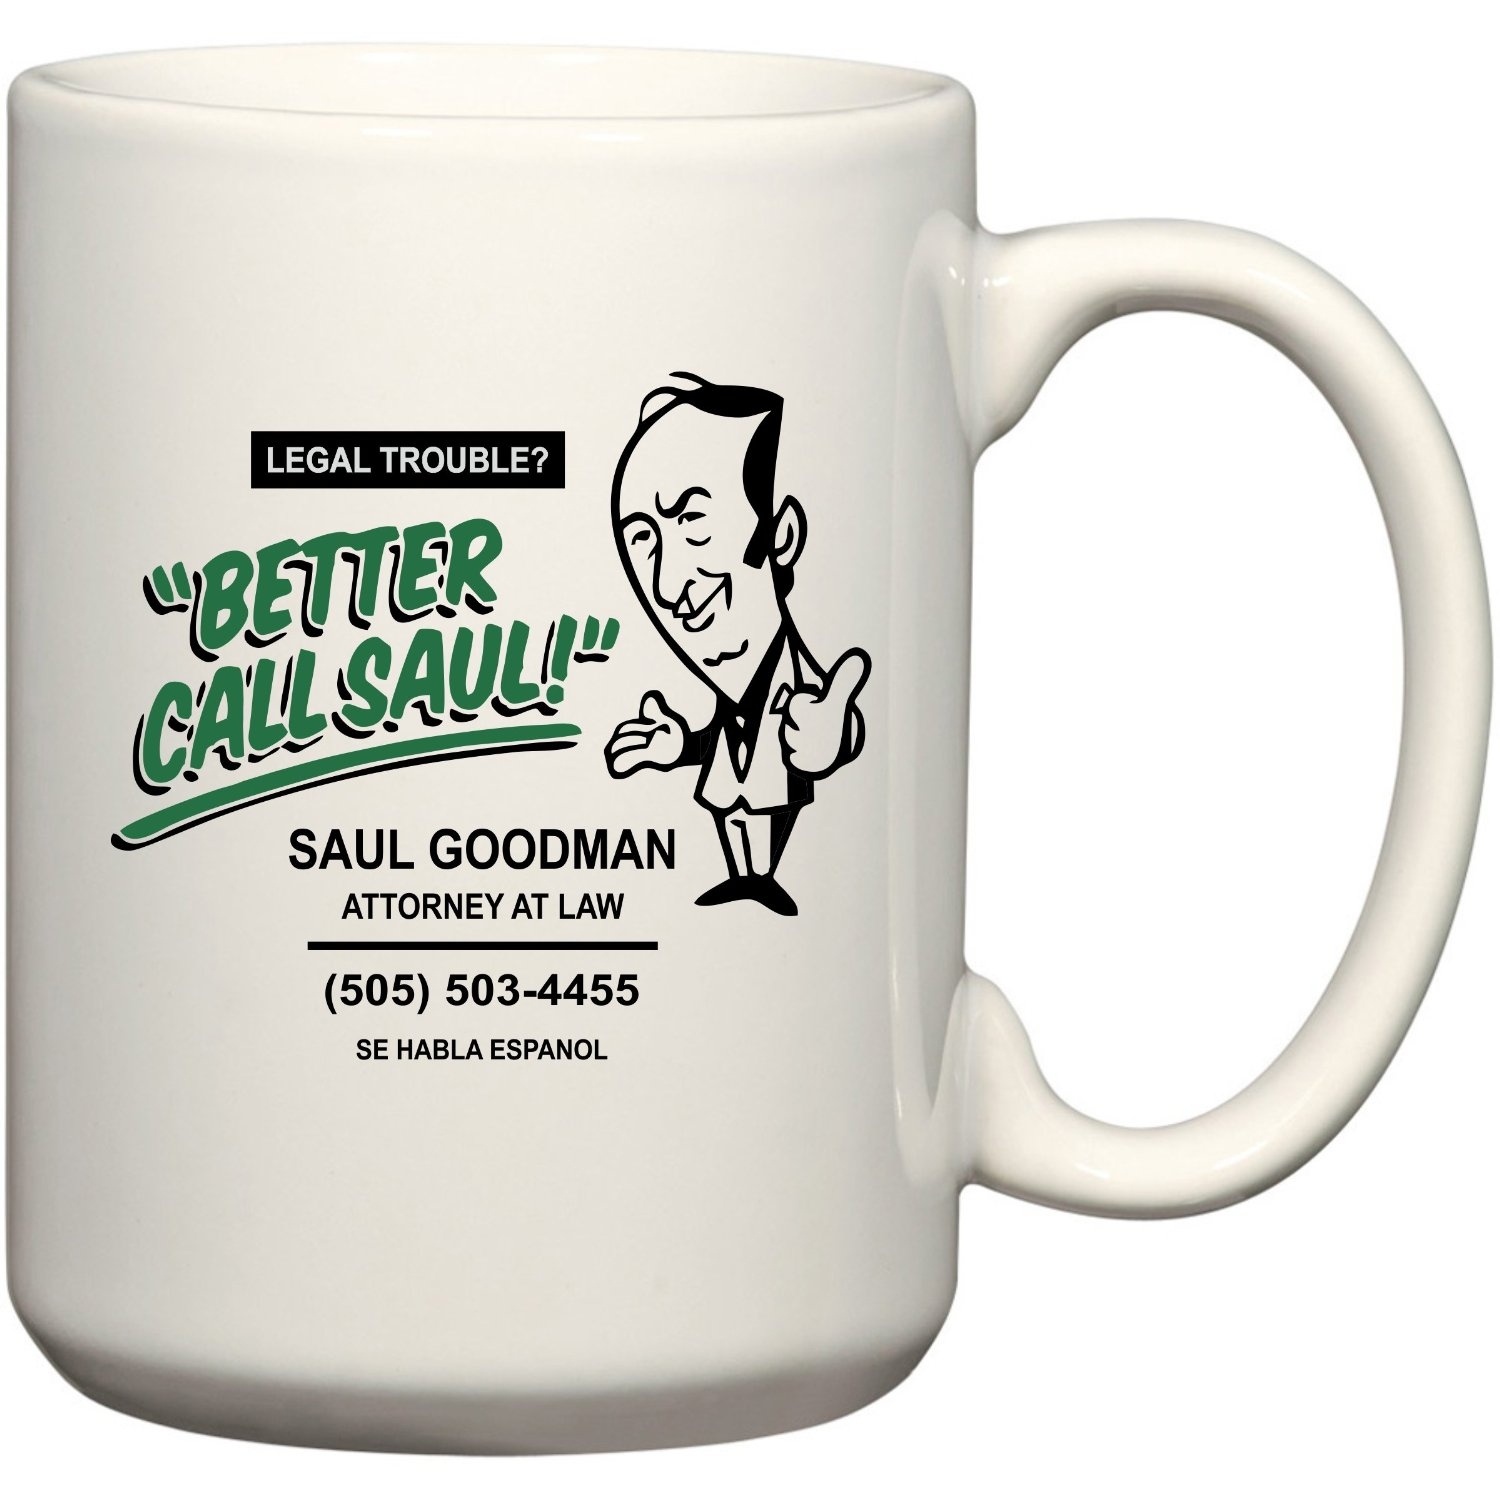 Funny Coffee Mugs And Mugs With Quotes Better Call Saul